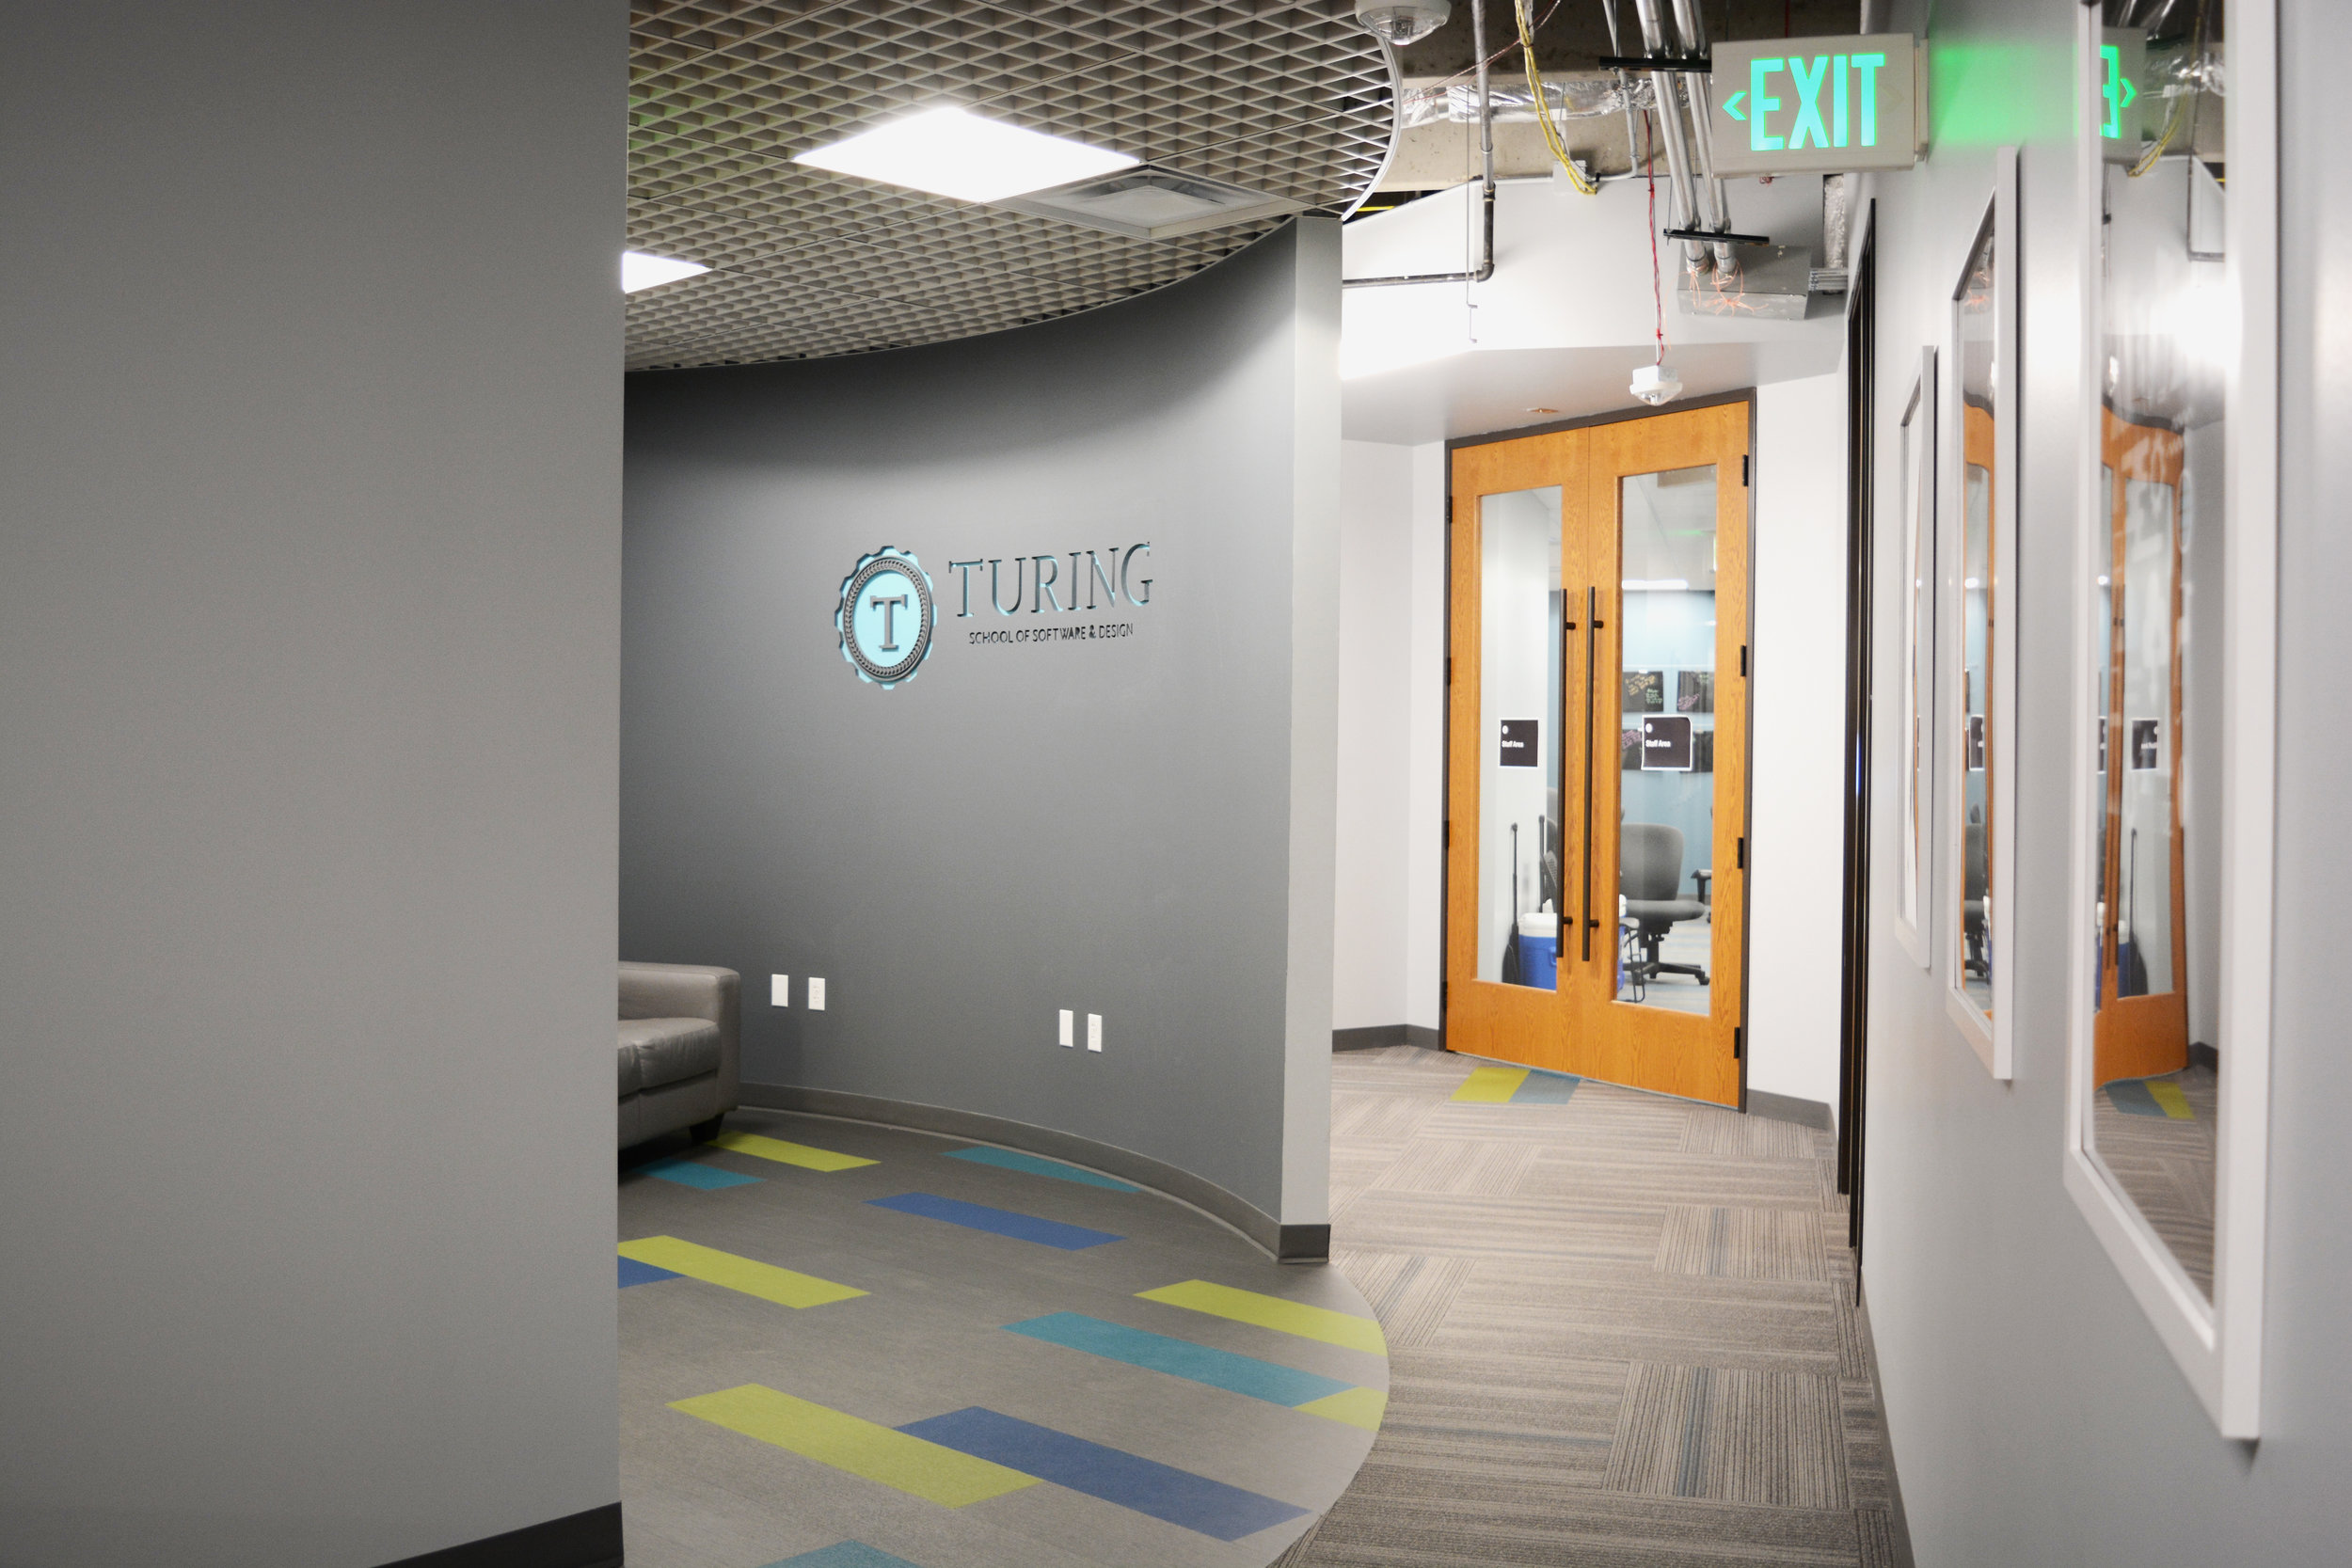 While the space required a devoted entry area, Turing does not operate with a receptionist. We created an interesting entry without dedicating a significant amount of square footage. Patcraft's Mixed Materials Metallix LVT flooring and Armstrong's MetalWorks Open Cell ceiling create multiple colors and textures for a big impact without big sacrifice of area.